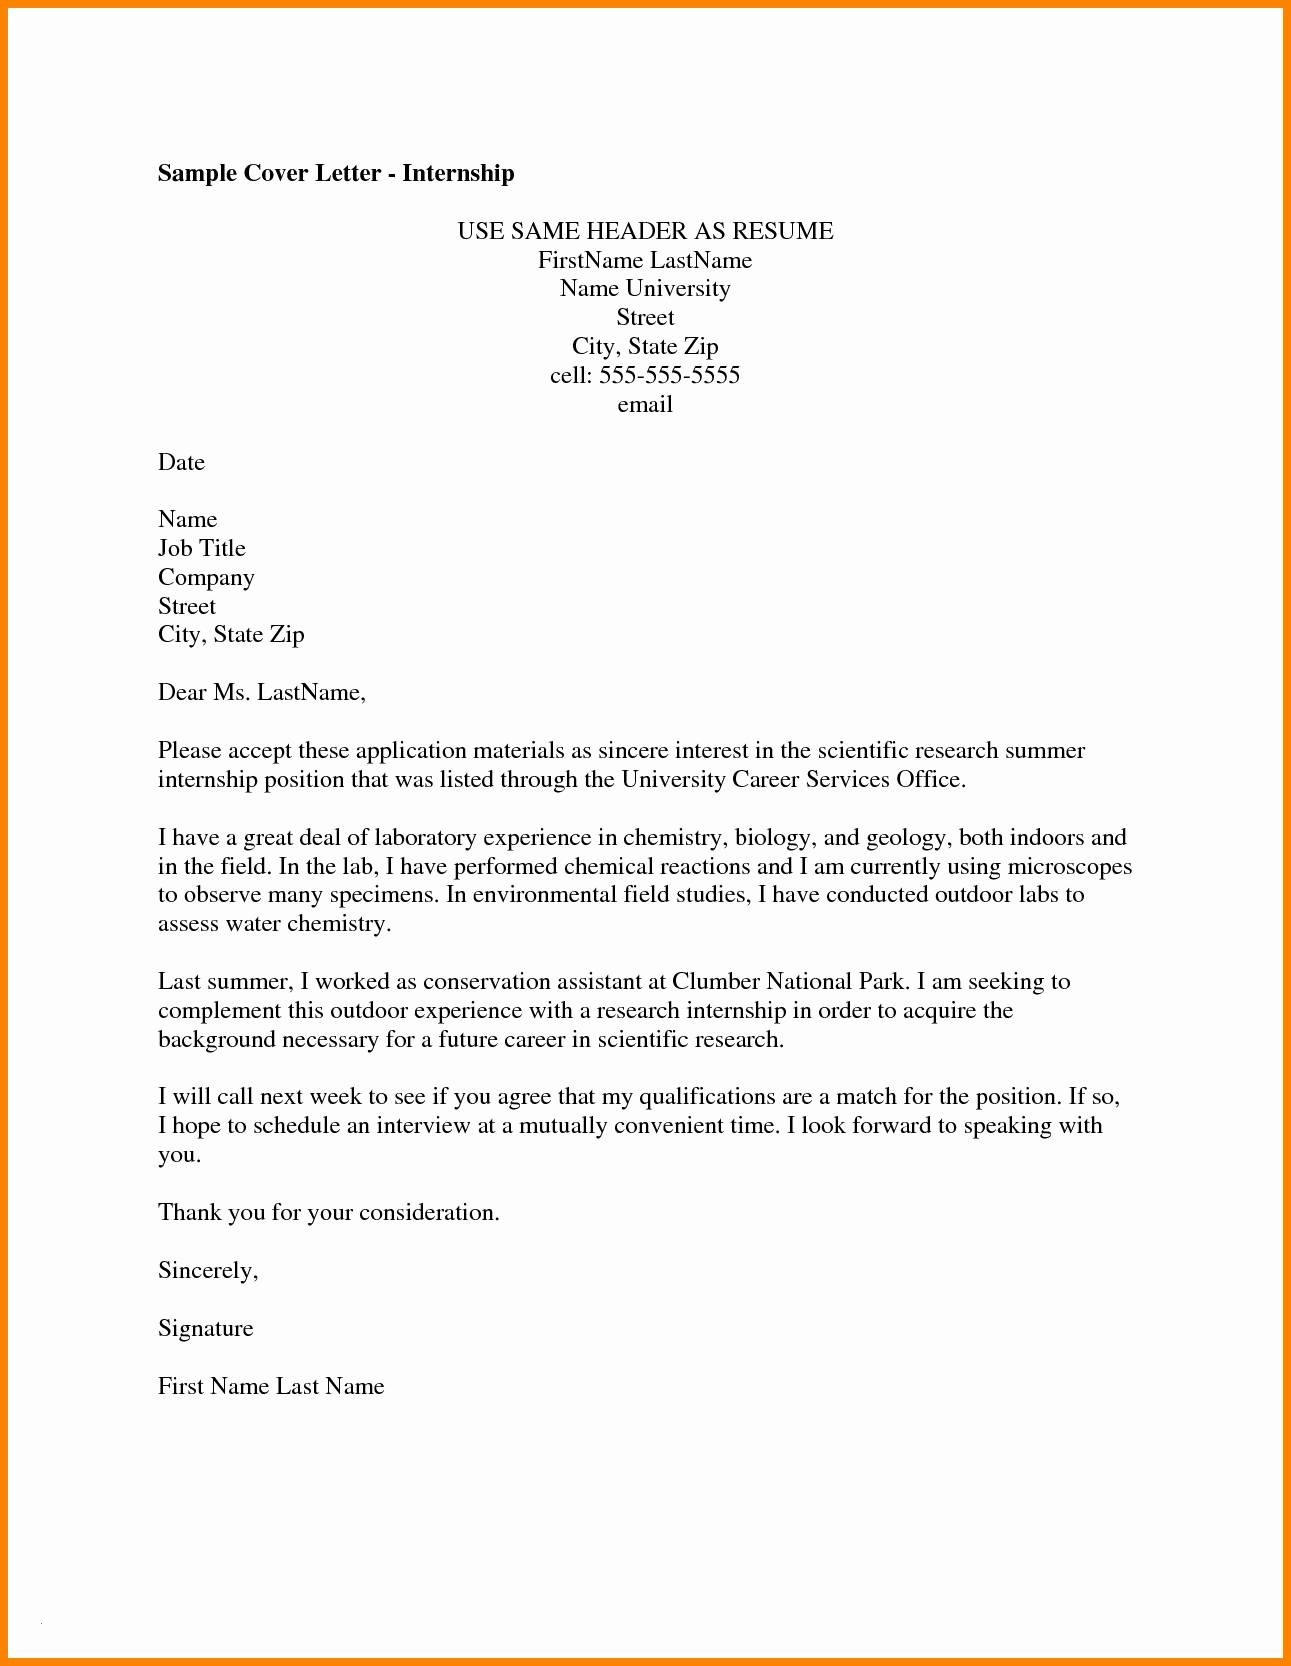 Leed Letter Template - Sample Resume Doc Unique Leed Letter Template Awesome Resume